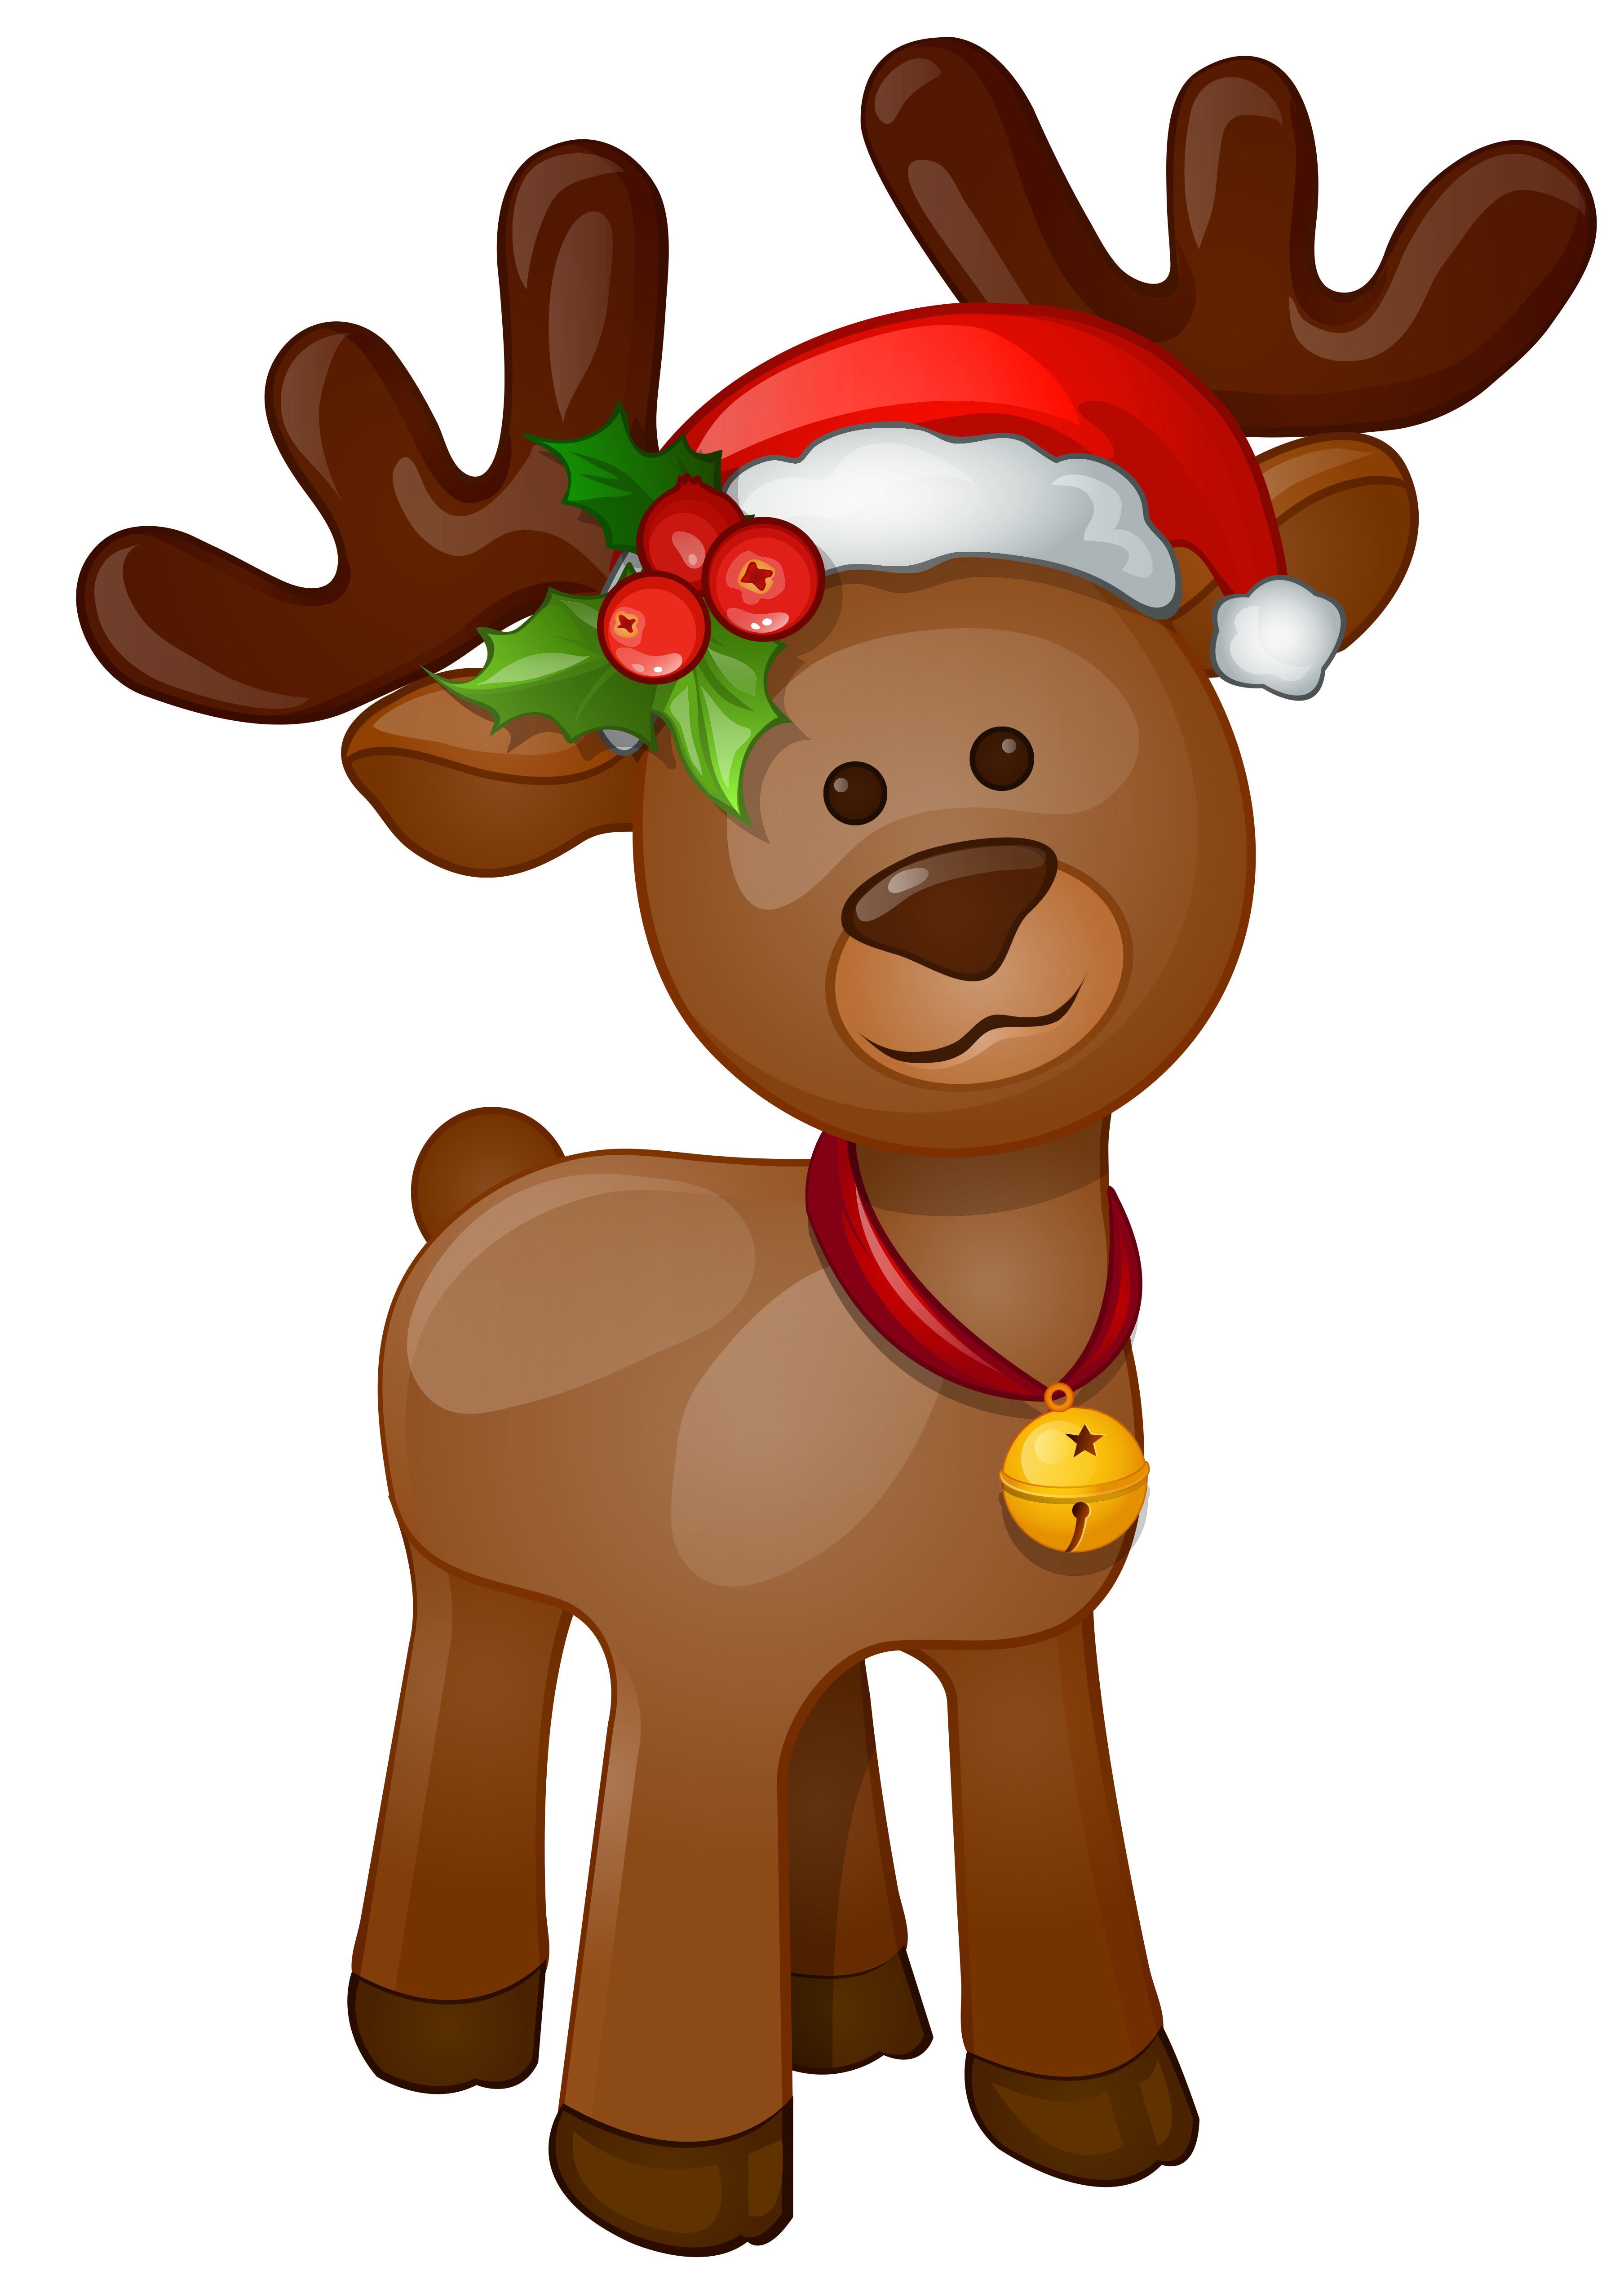 Christmas PNG Images Transparent Free Download.